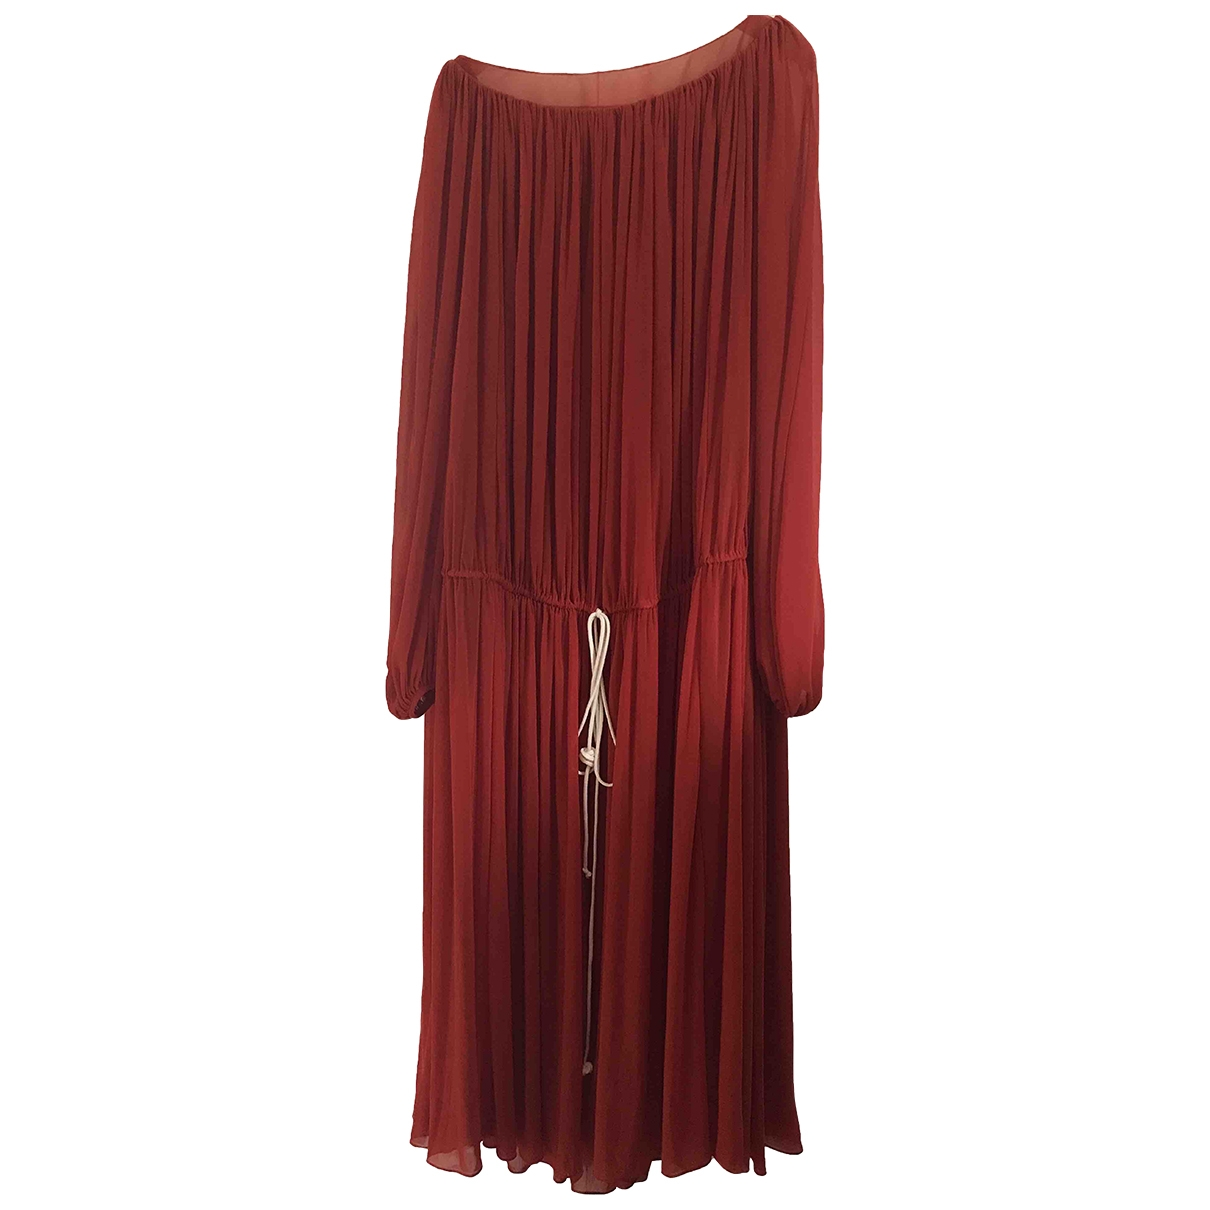 By Bonnie Young \N Kleid in  Rot Polyester